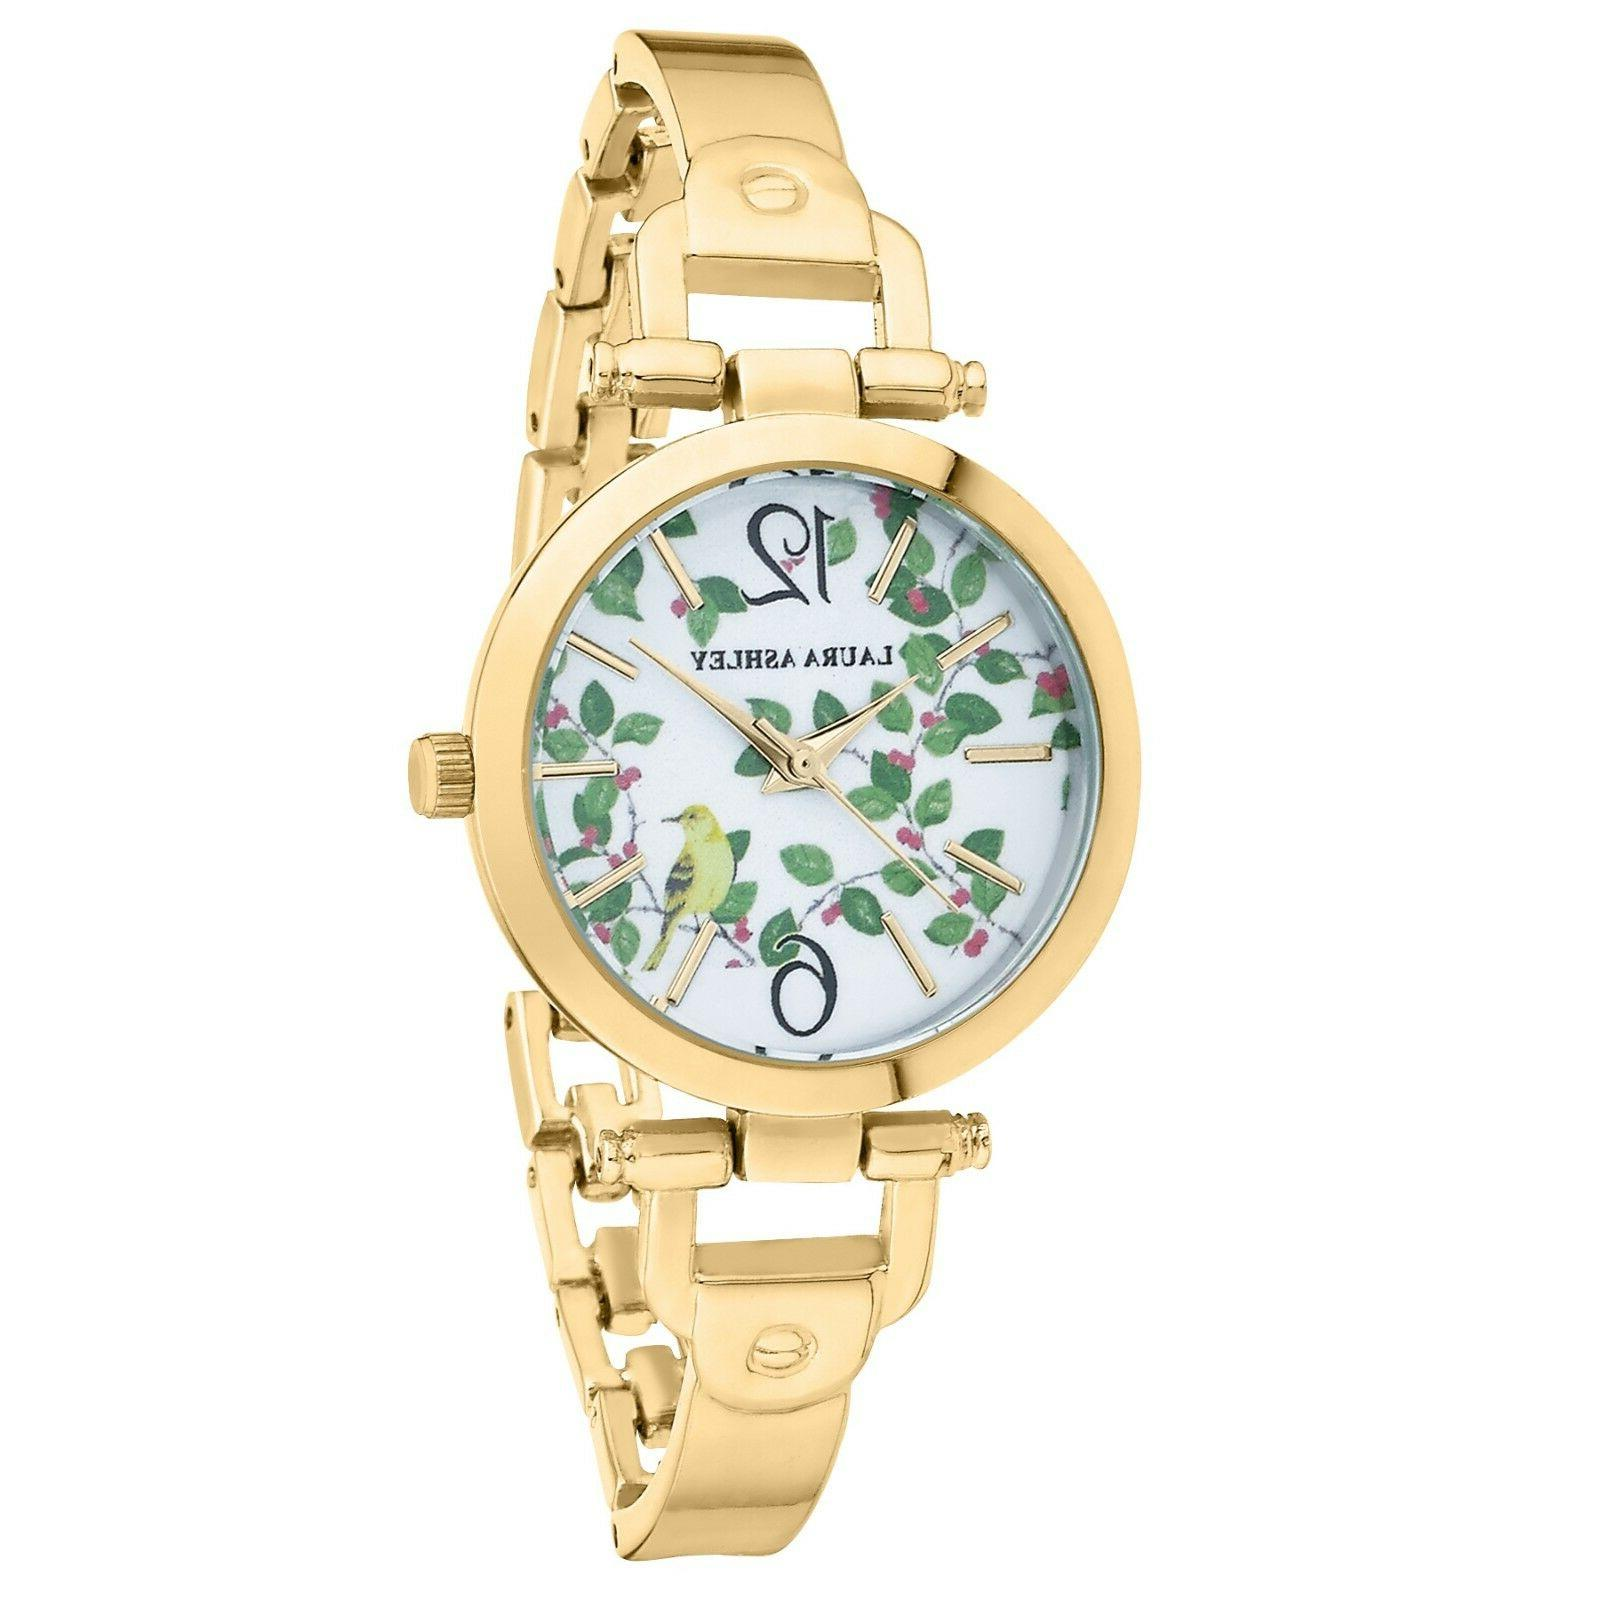 Laura Ashley Band Women's Watch Comes Gift